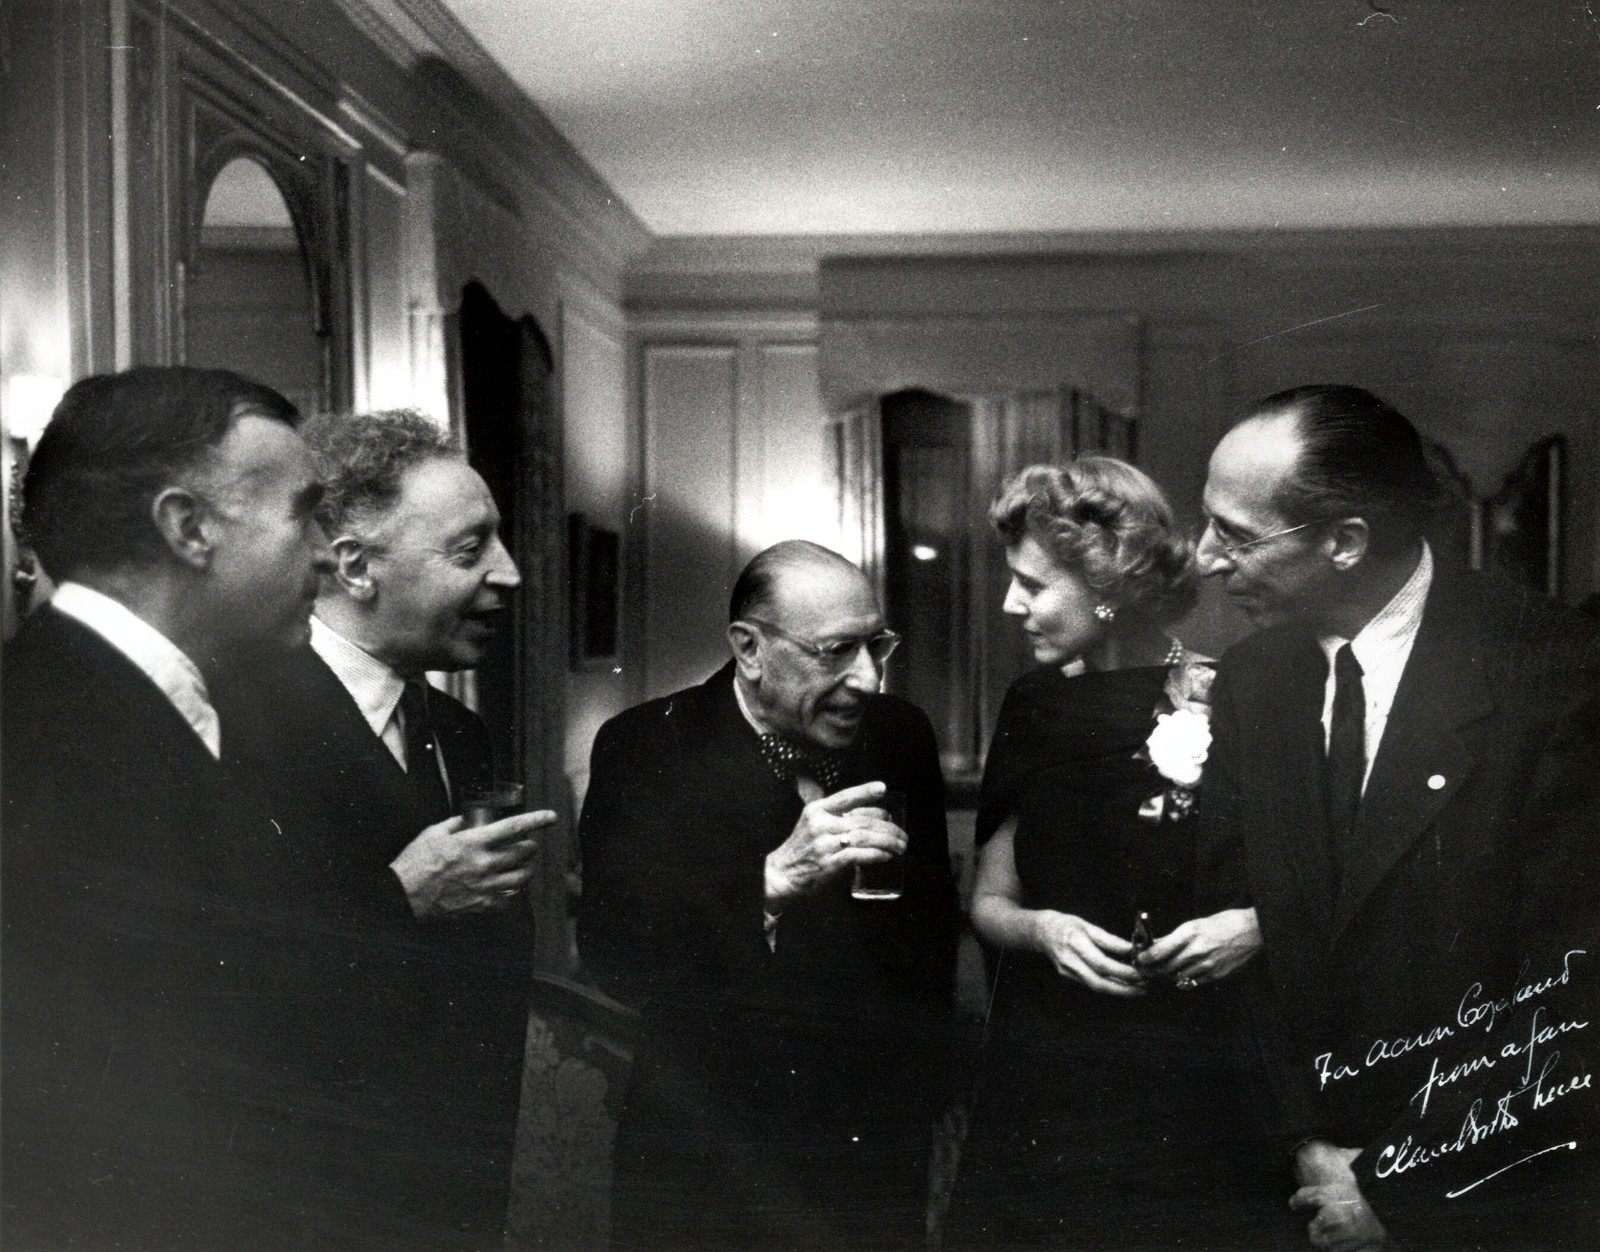 Aaron-copland-with-carlos-chavez-artur-rubinstein-igor-stravinsky-and-claire-1600_small